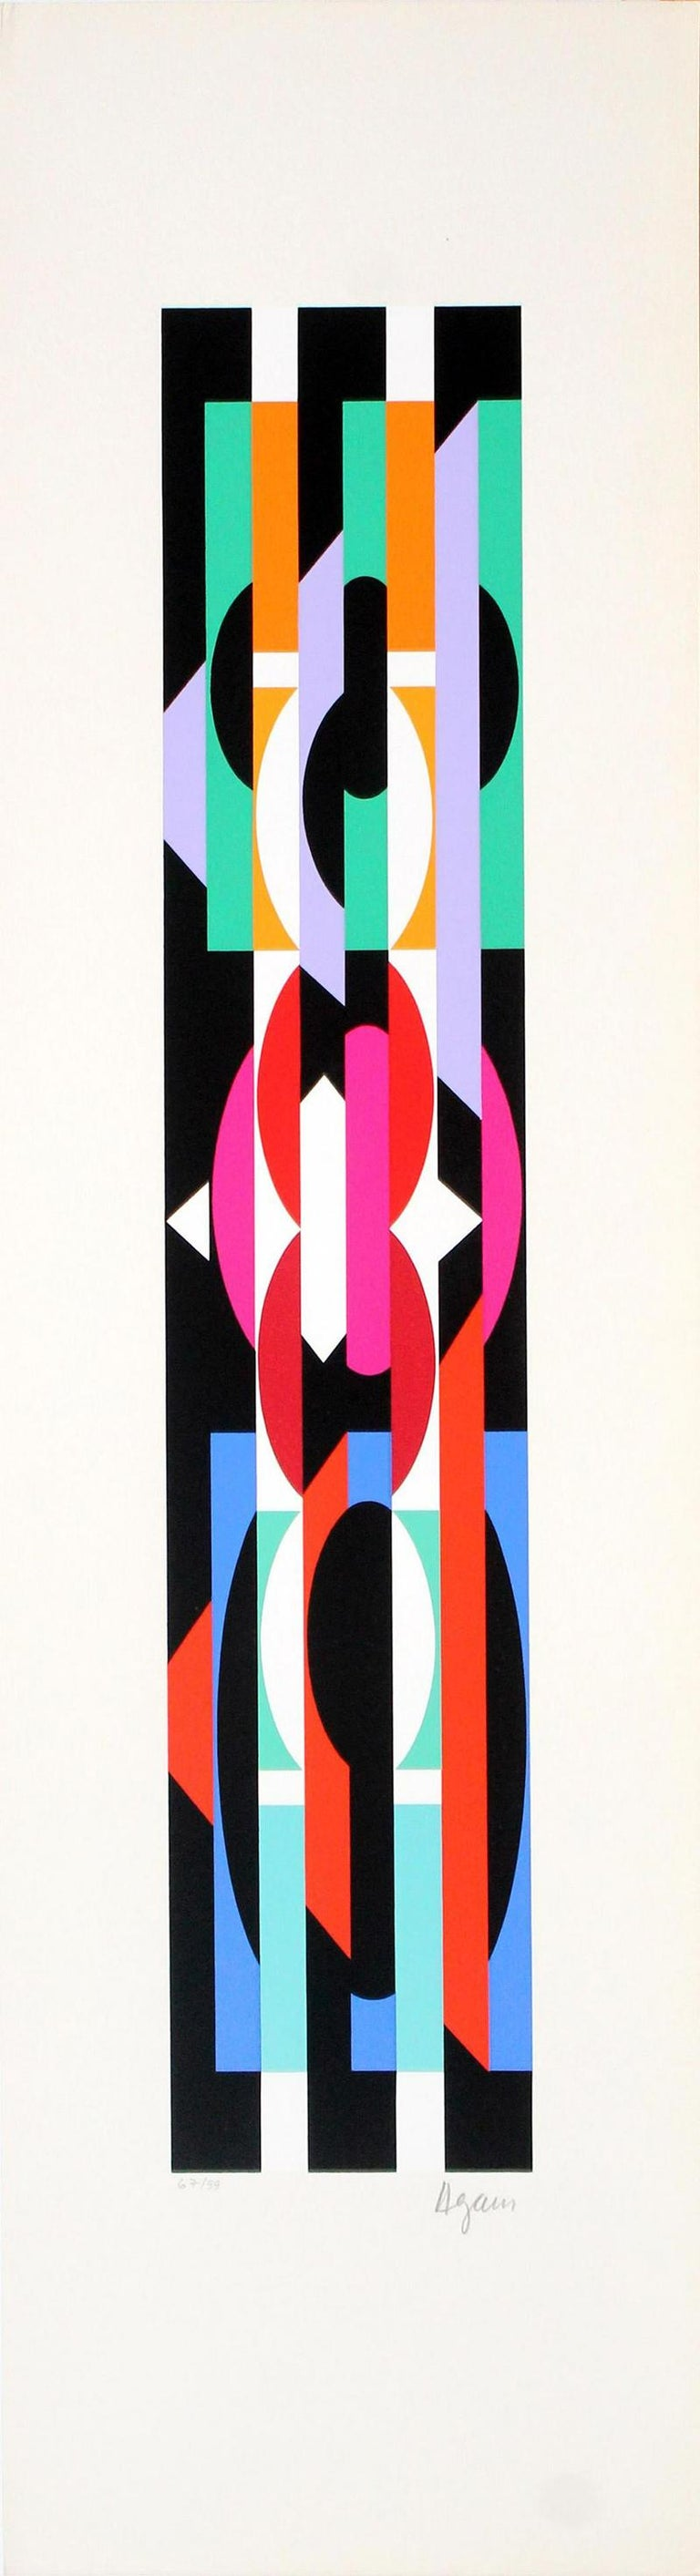 YAACOV AGAM  UNTITLED 6 FROM THE +-X9 SUITE  SIGNED AND NUMBERED - Op Art Print by Agam Yaacov